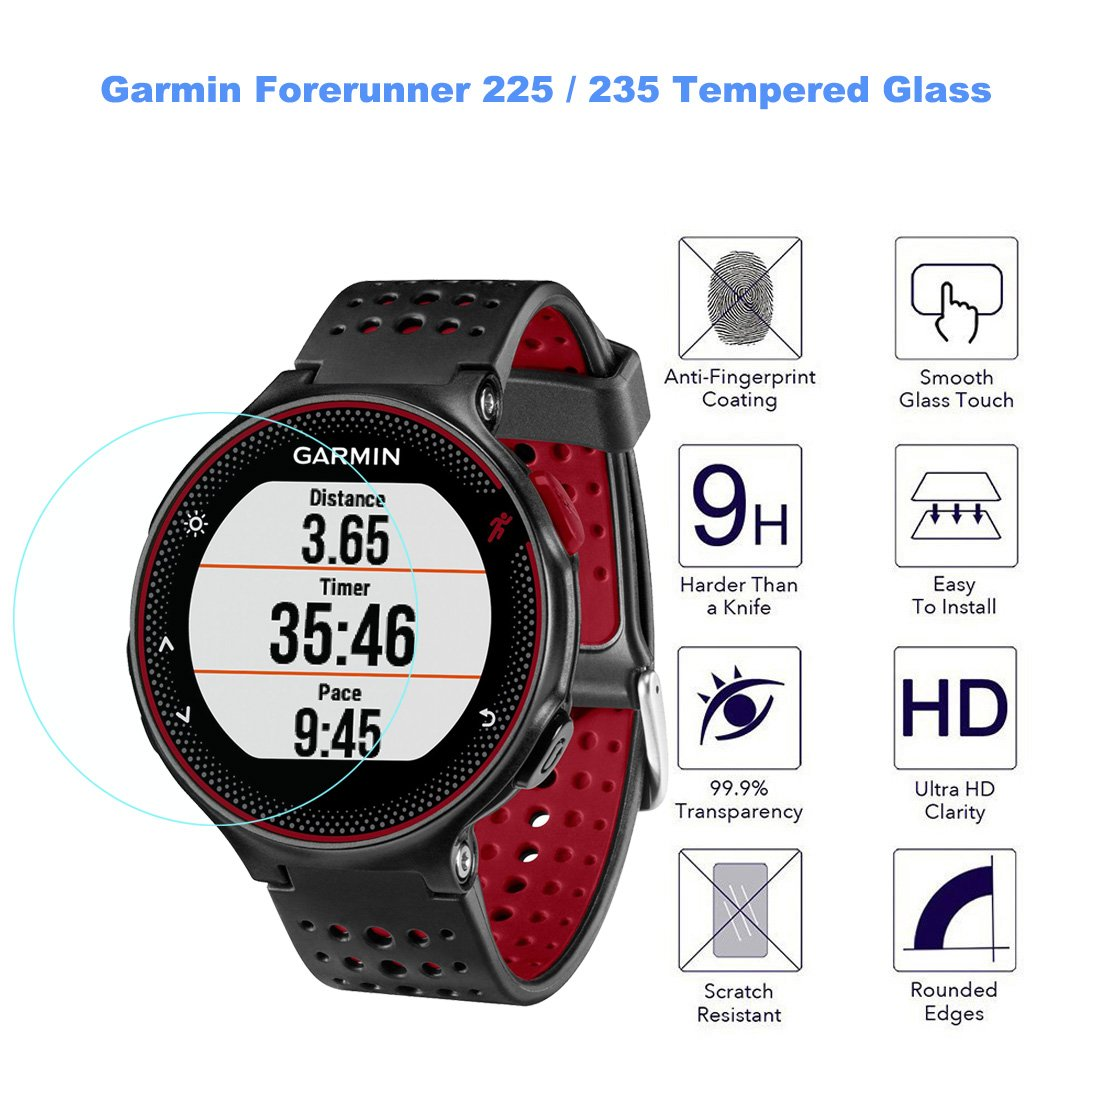 9H Hardness Rerii Tempered Glass Screen Protector for Garmin Forerunner 235 225 Garmin Forerunner 235 225 Screen Protector High Definition 0.3mm Thickness Real Glass Screen Protector